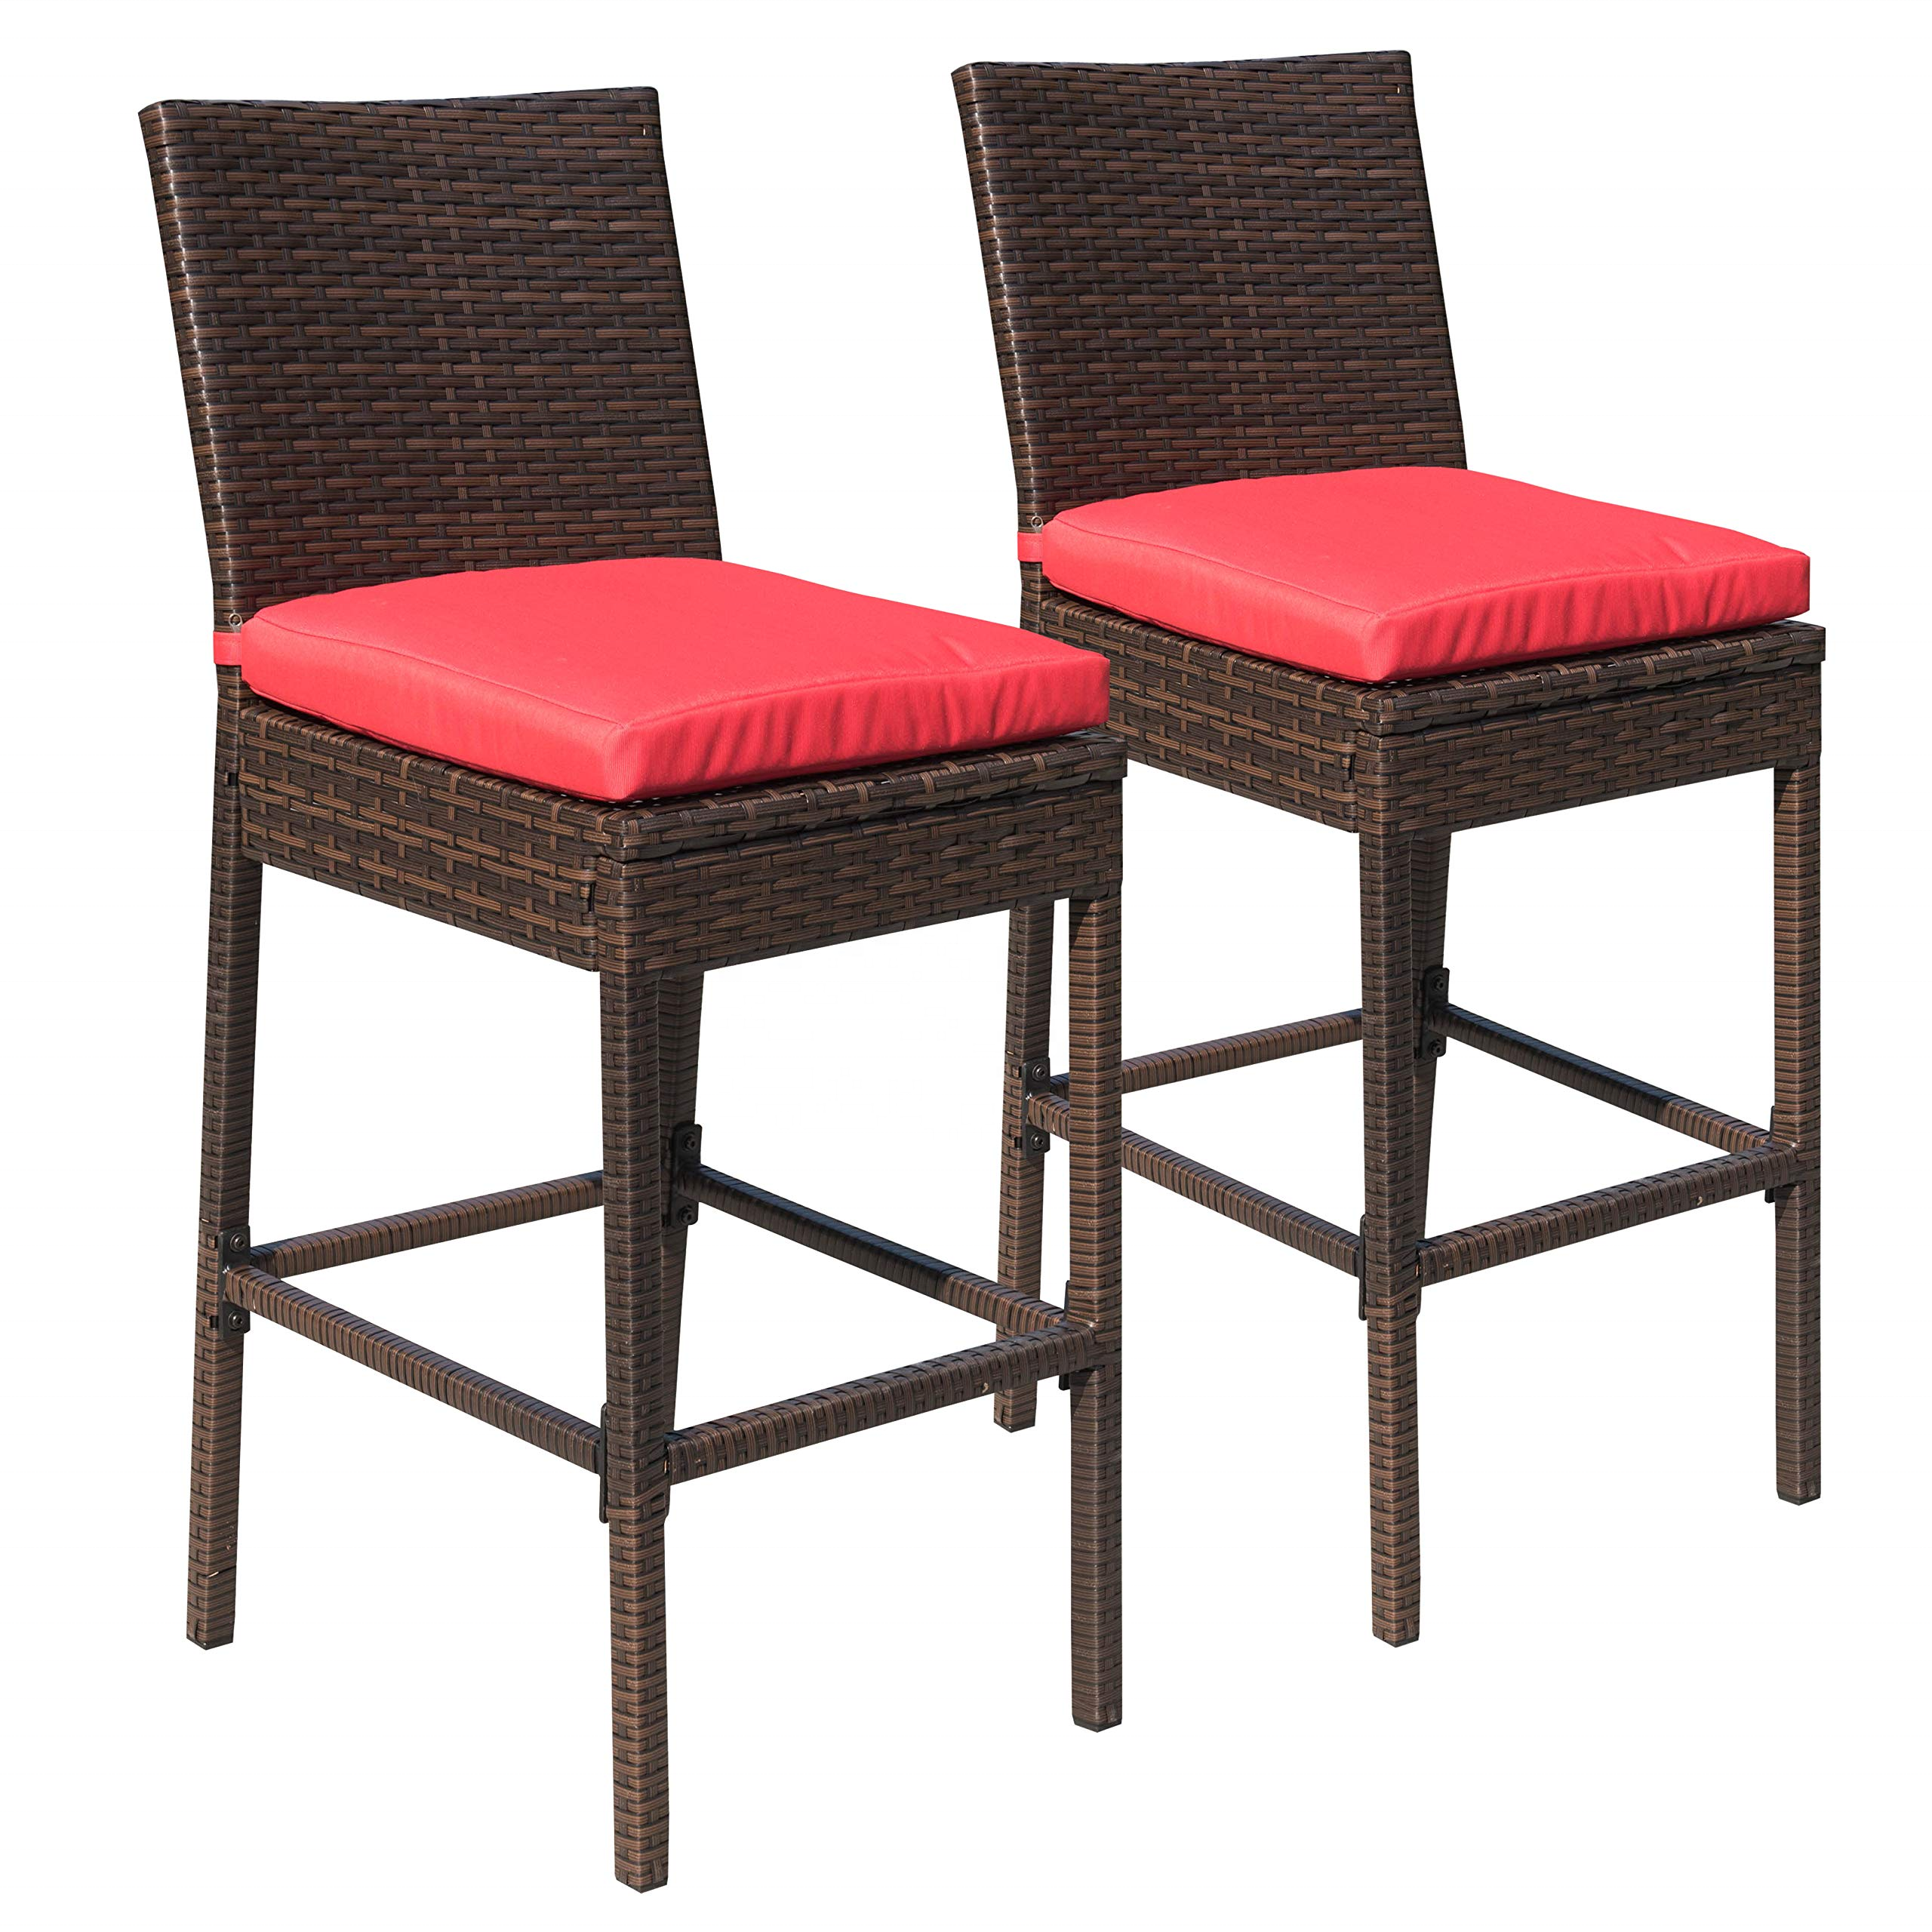 2pcs Outdoor Upgraded All Weather Wicker Bar Stools with Cushions